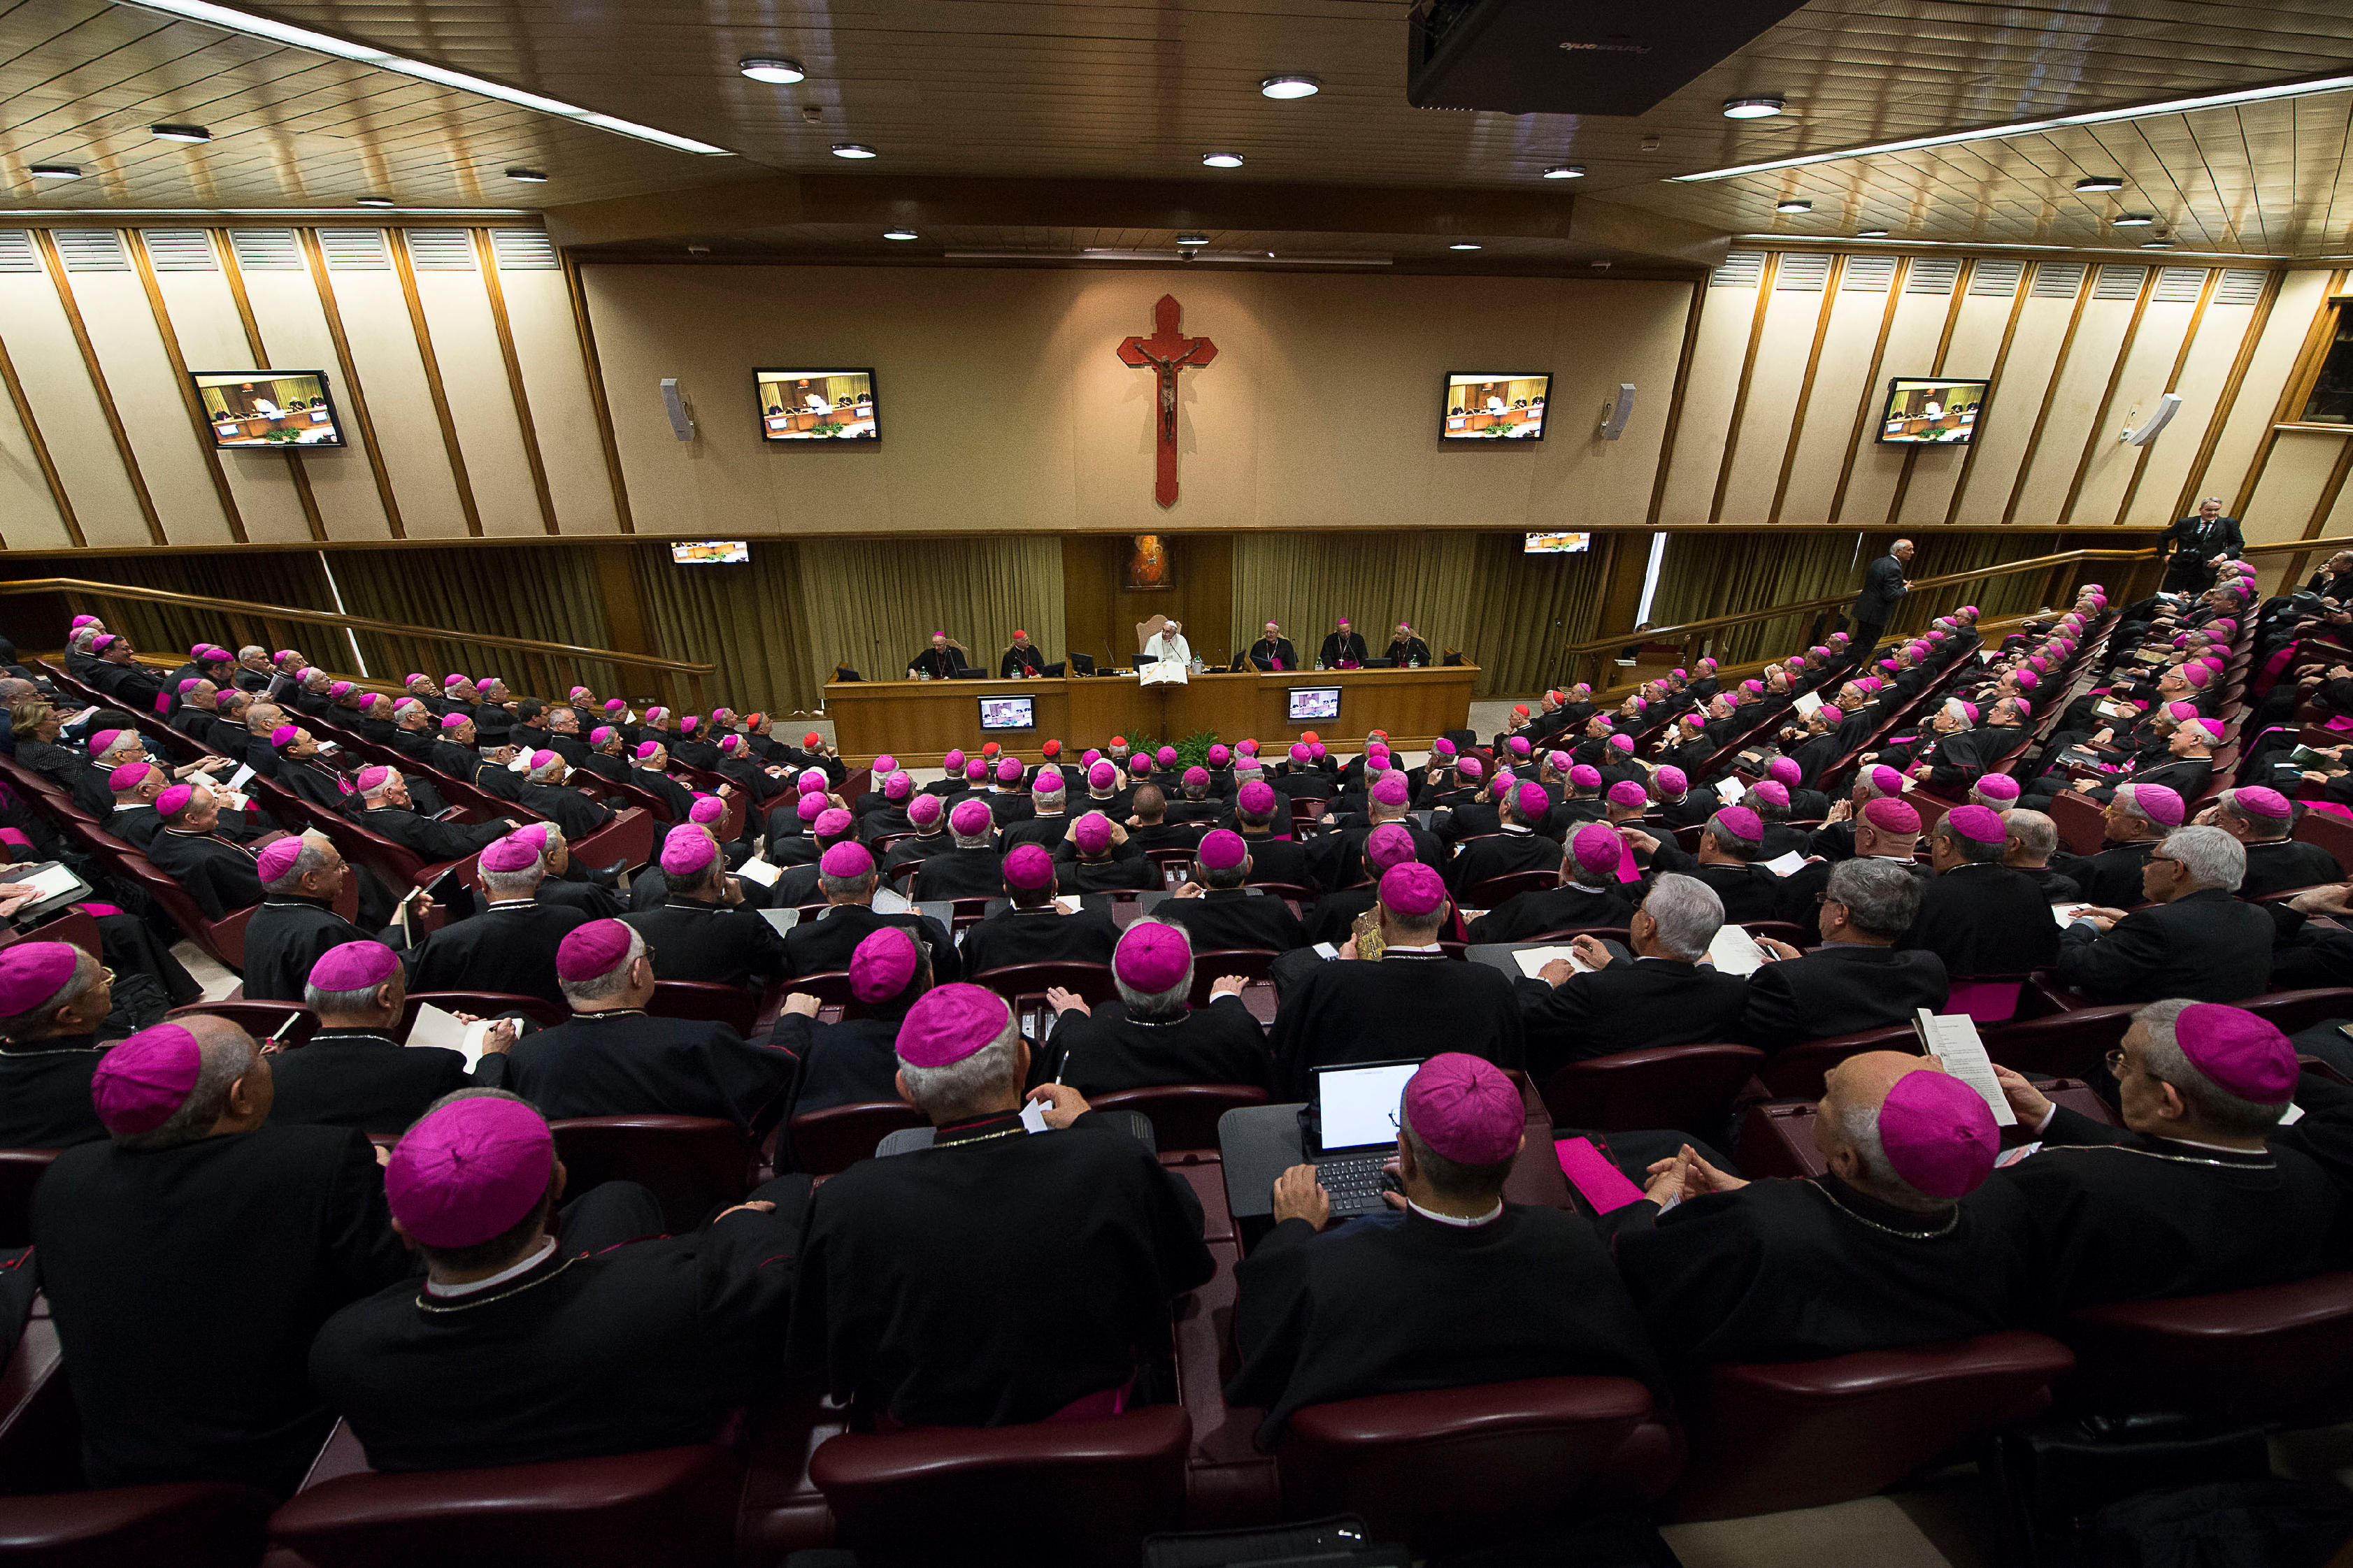 Pope meets the Italian Conference of Bishops (CEI) on Monday